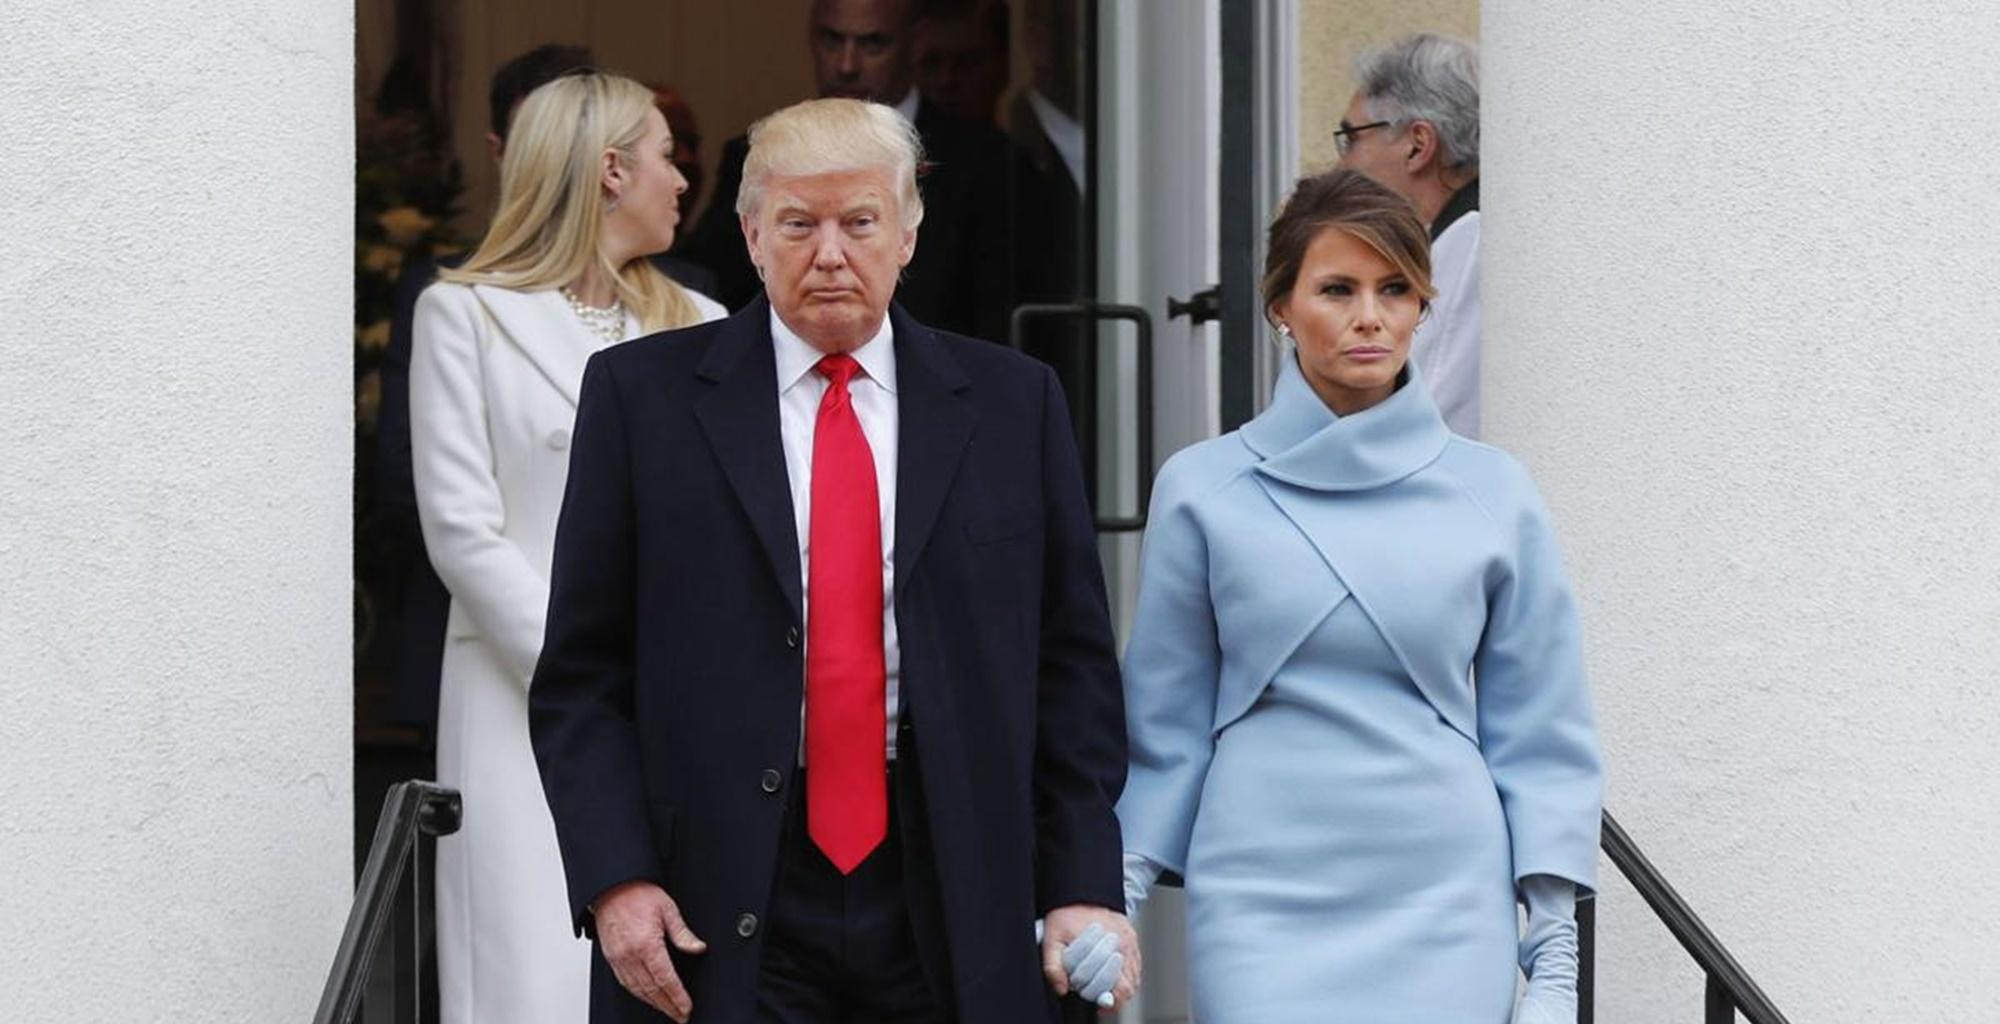 Melania Trump Gets Disgraced Sculpture Erected In Her Honor -- Pictures Of Giant Wooded Creation Have Some Ridiculing The Donald's Wife